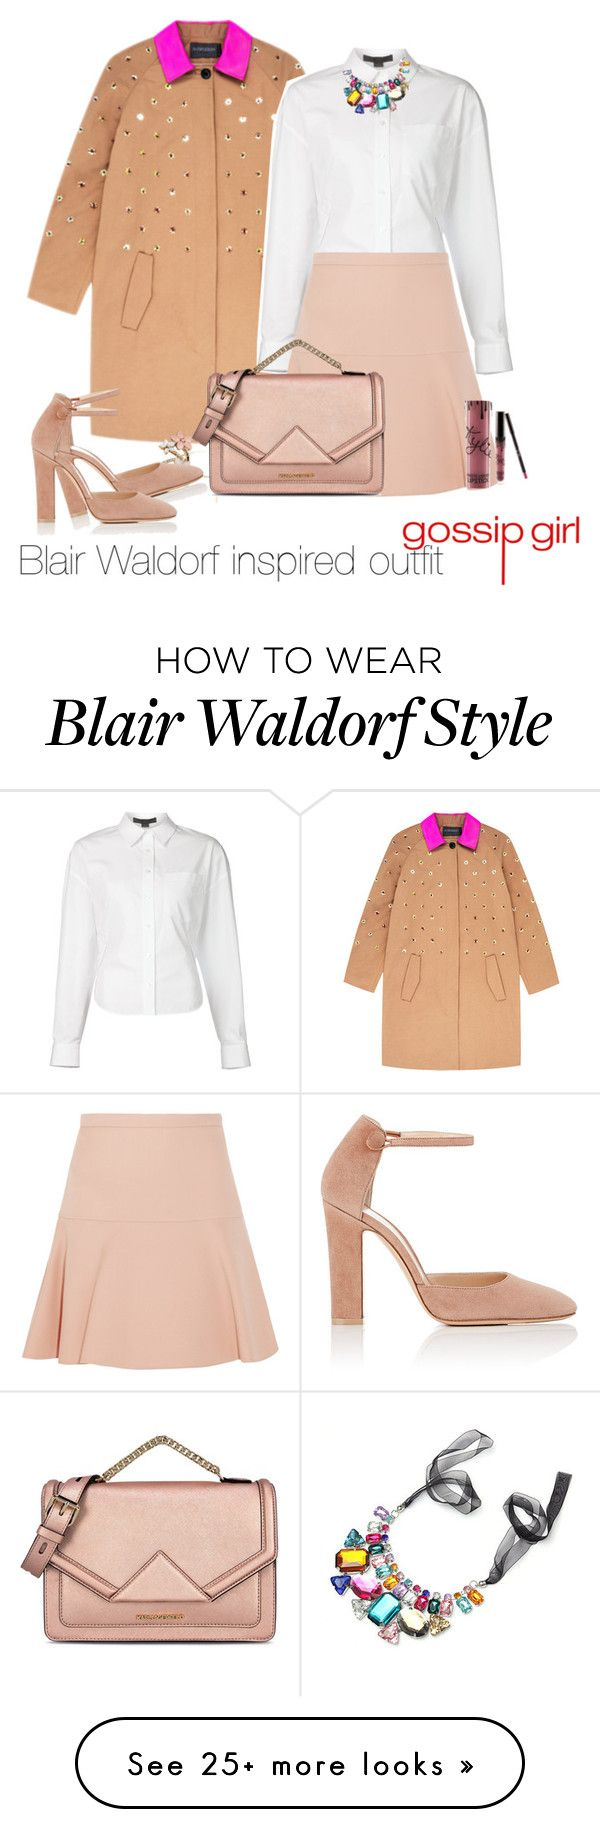 """Blair Waldorf inspired outfit/GG"" by tvdsarahmichele on Polyvore featuring Alexander Wang, Miu Miu, Accessorize, Kylie Cosmetics, Gianvito Rossi and Karl Lagerfeld"